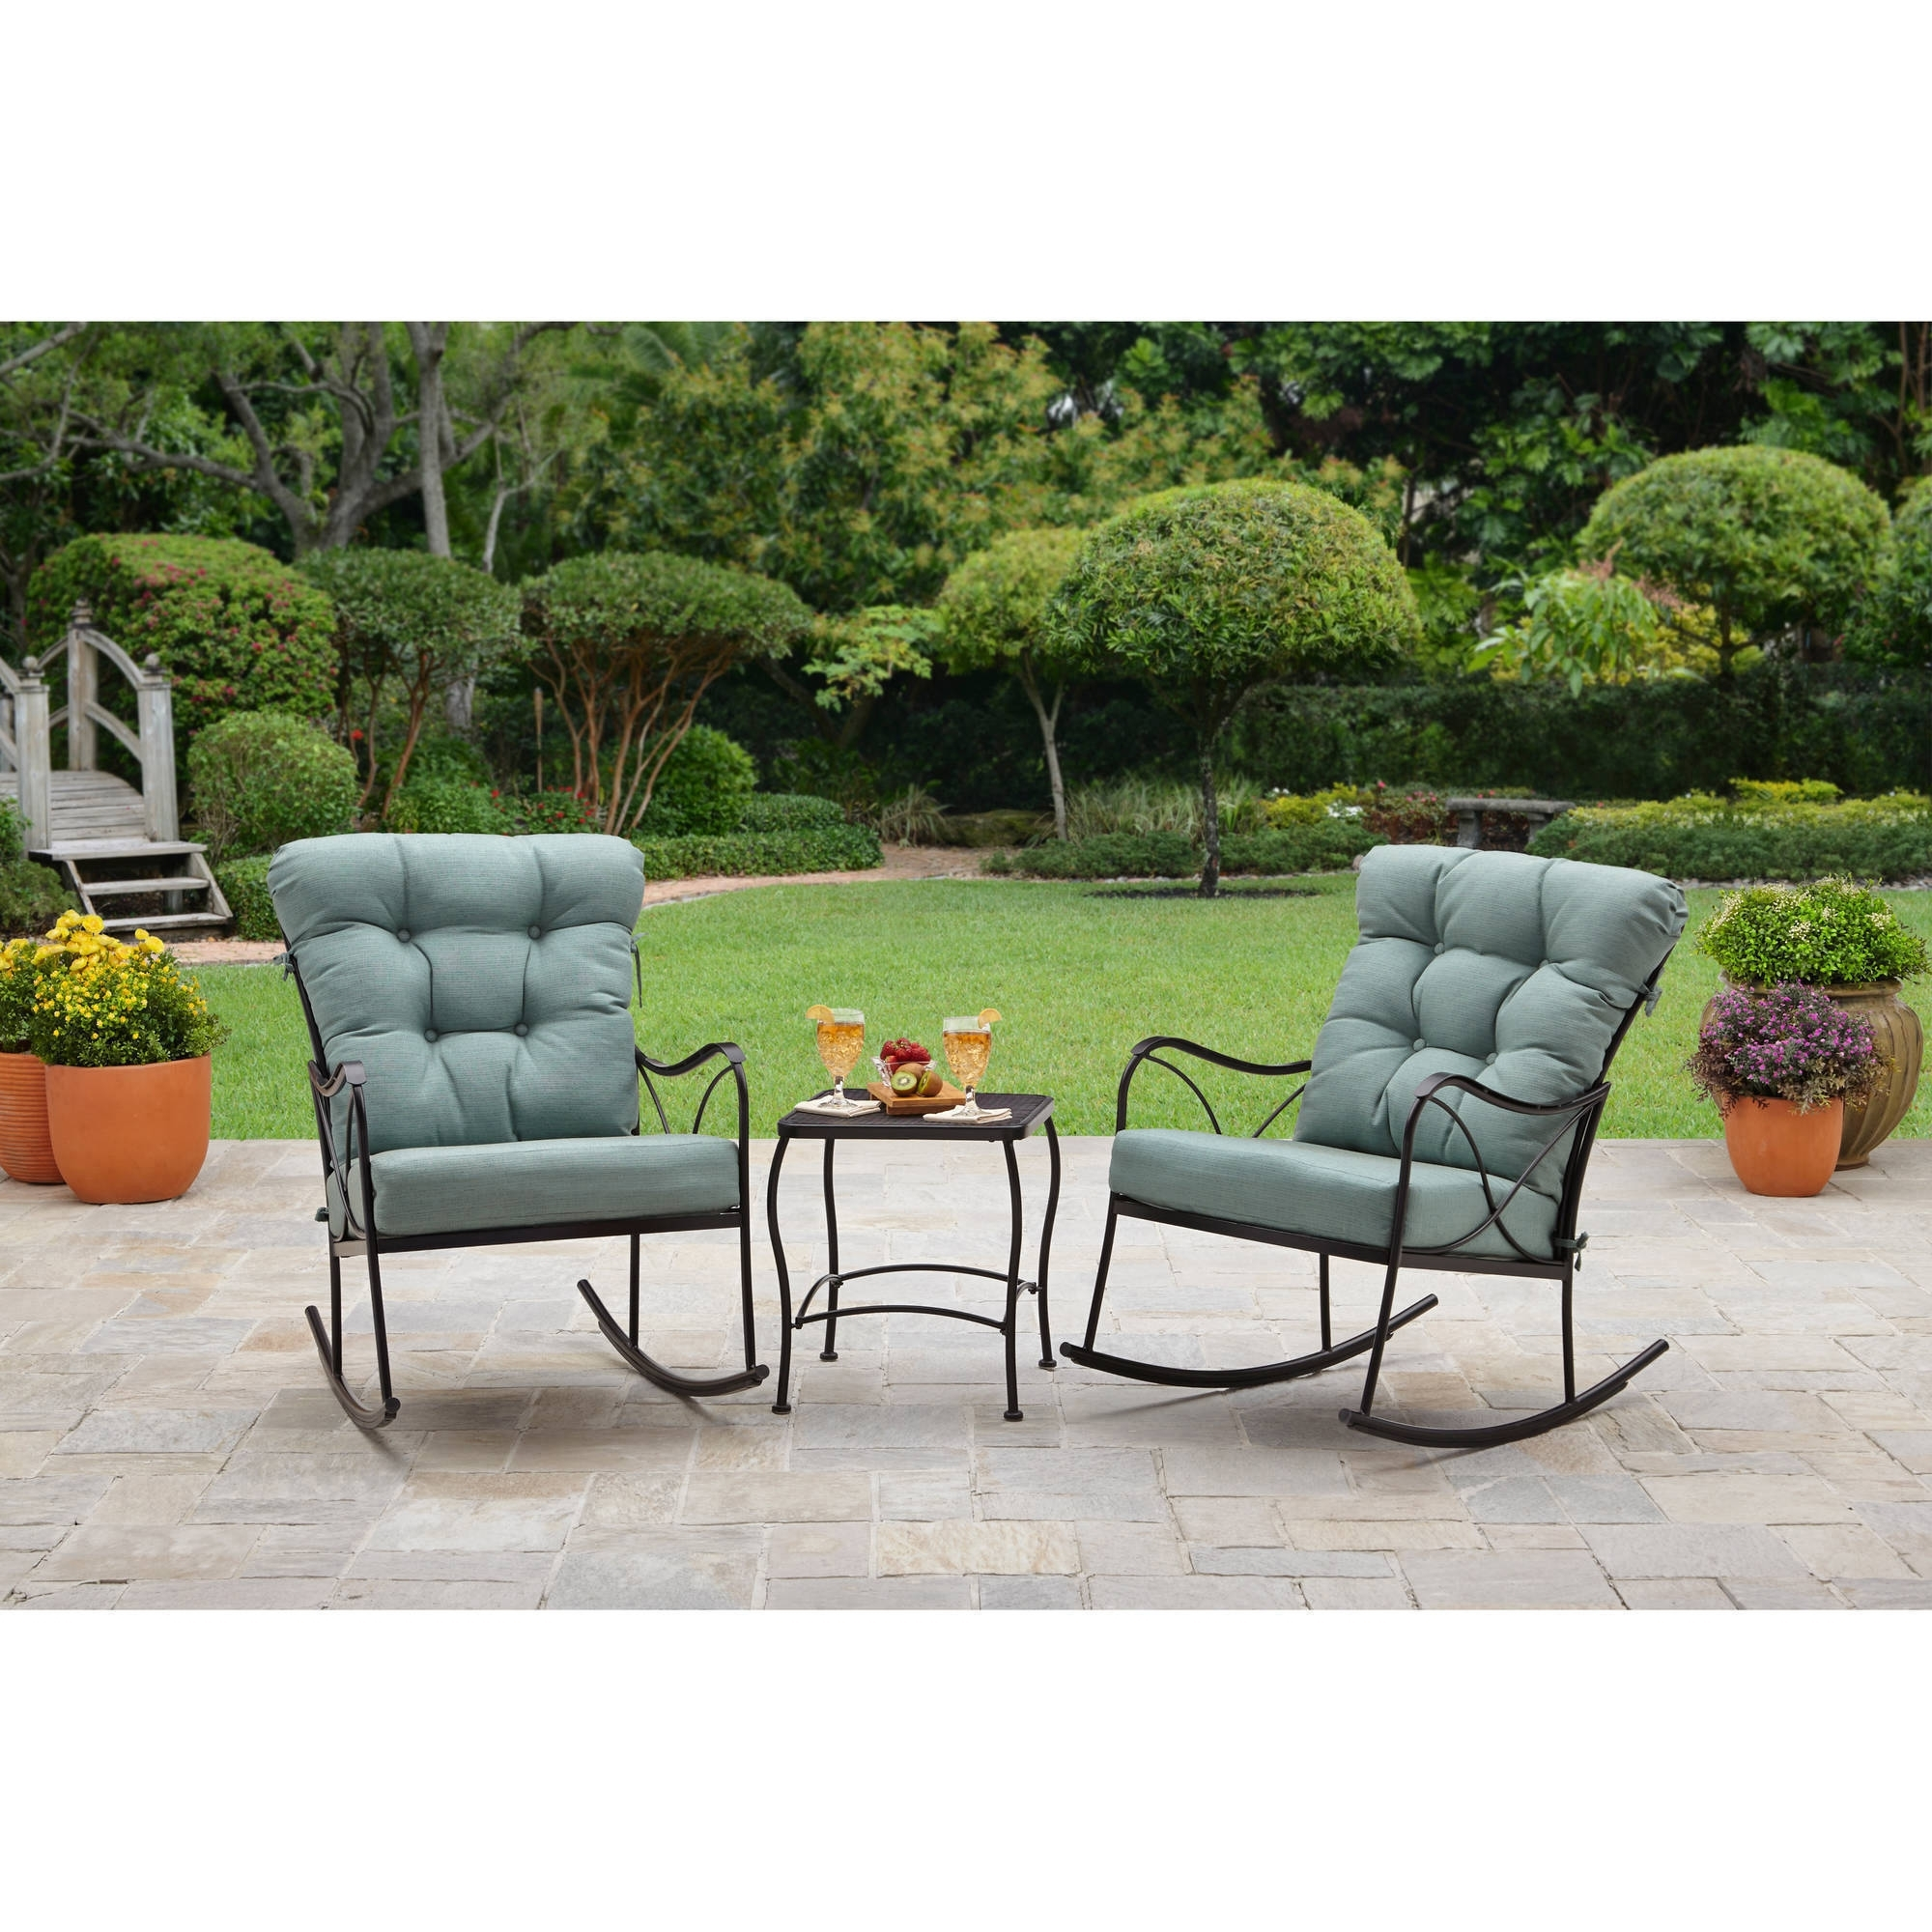 Current Outdoor Rocking Chairs With Table Inside Better Homes And Gardens Seacliff 3 Piece Rocking Chair Bistro Set (View 5 of 20)